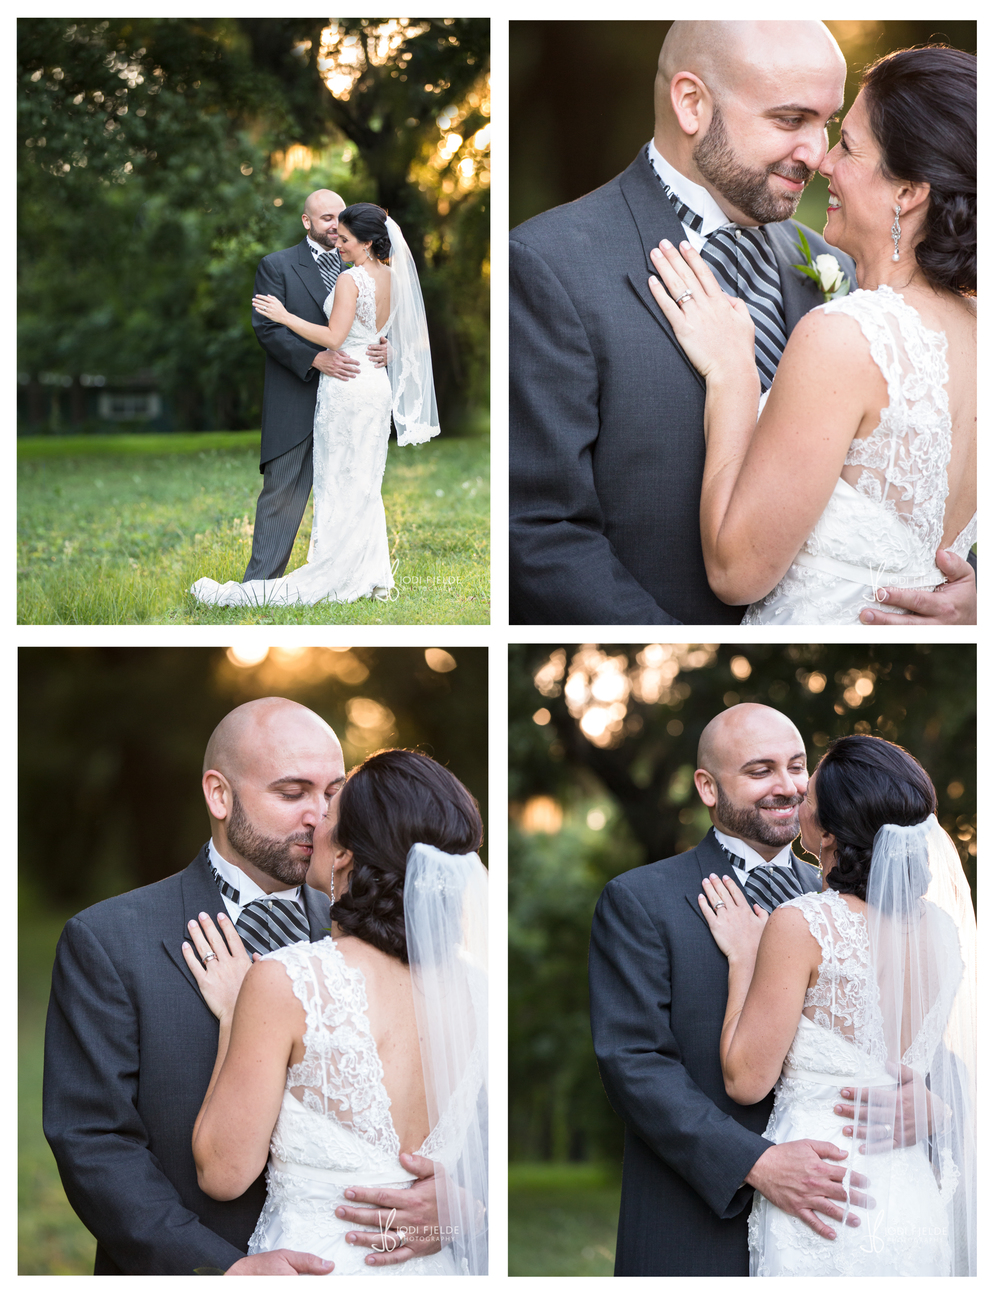 Highland_Manor_Apopka_Florida_wedding_Jackie_&_Tim_photography_jodi_Fjelde_photography-23.jpg